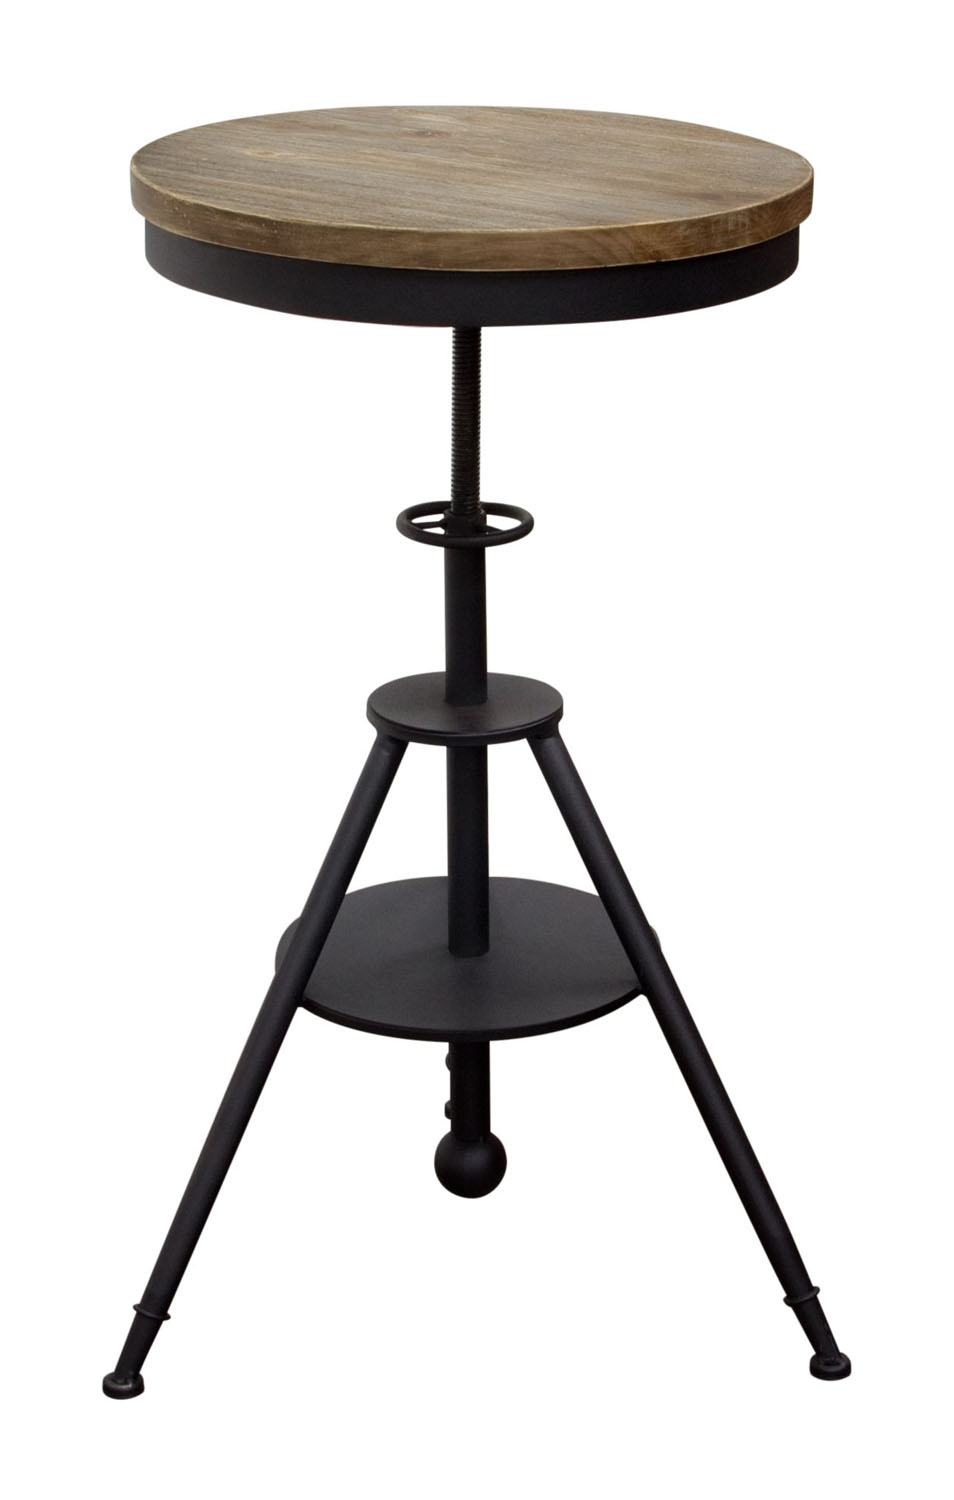 Douglas Vintage Adjustable Height Bistro Table with WeatheRed Grey Top and Powder Coat Iron Base